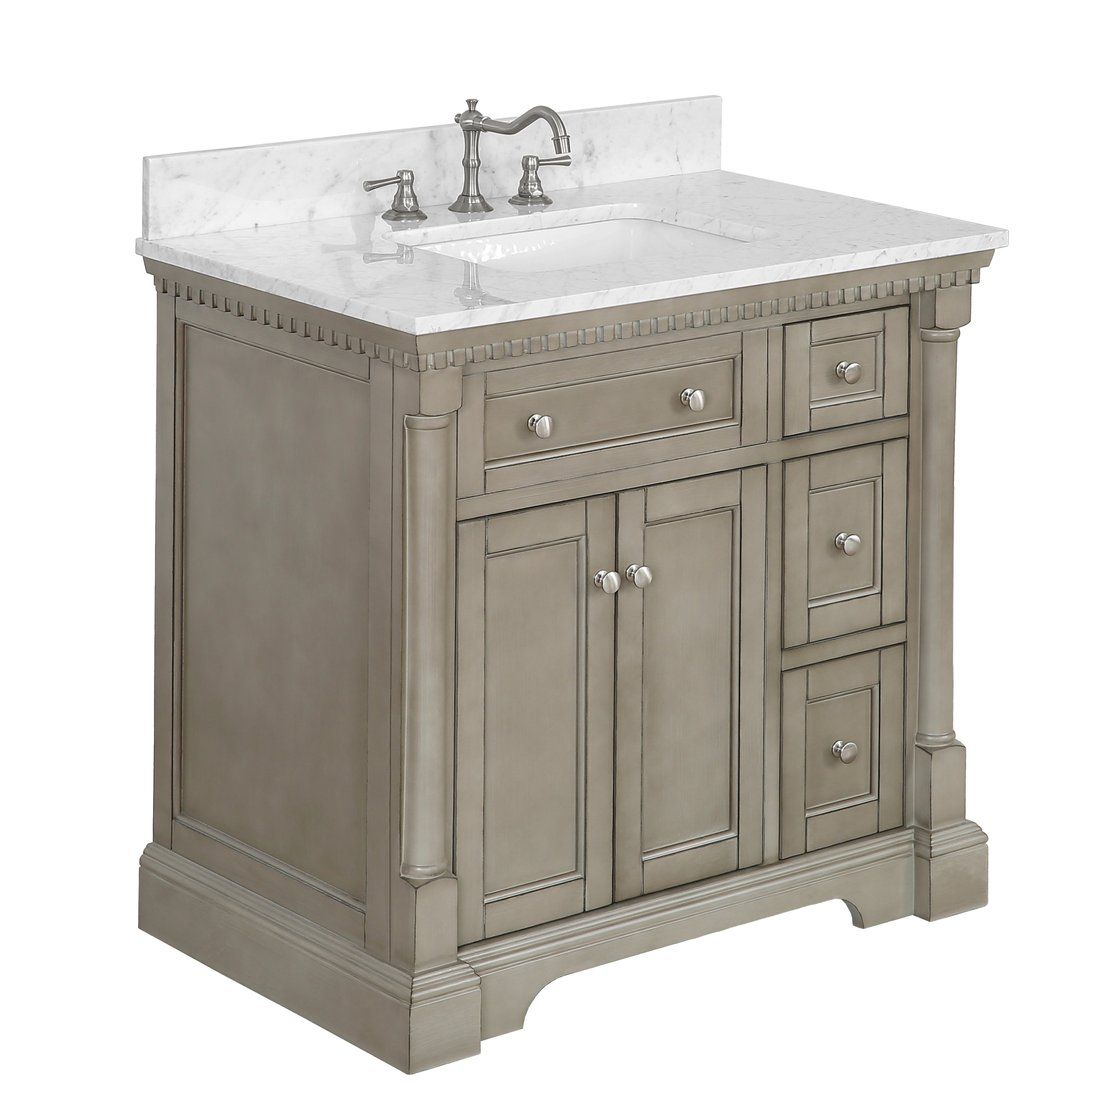 Sydney 36 Inch Vanity Carrara Marble Bathroom Vanity Single